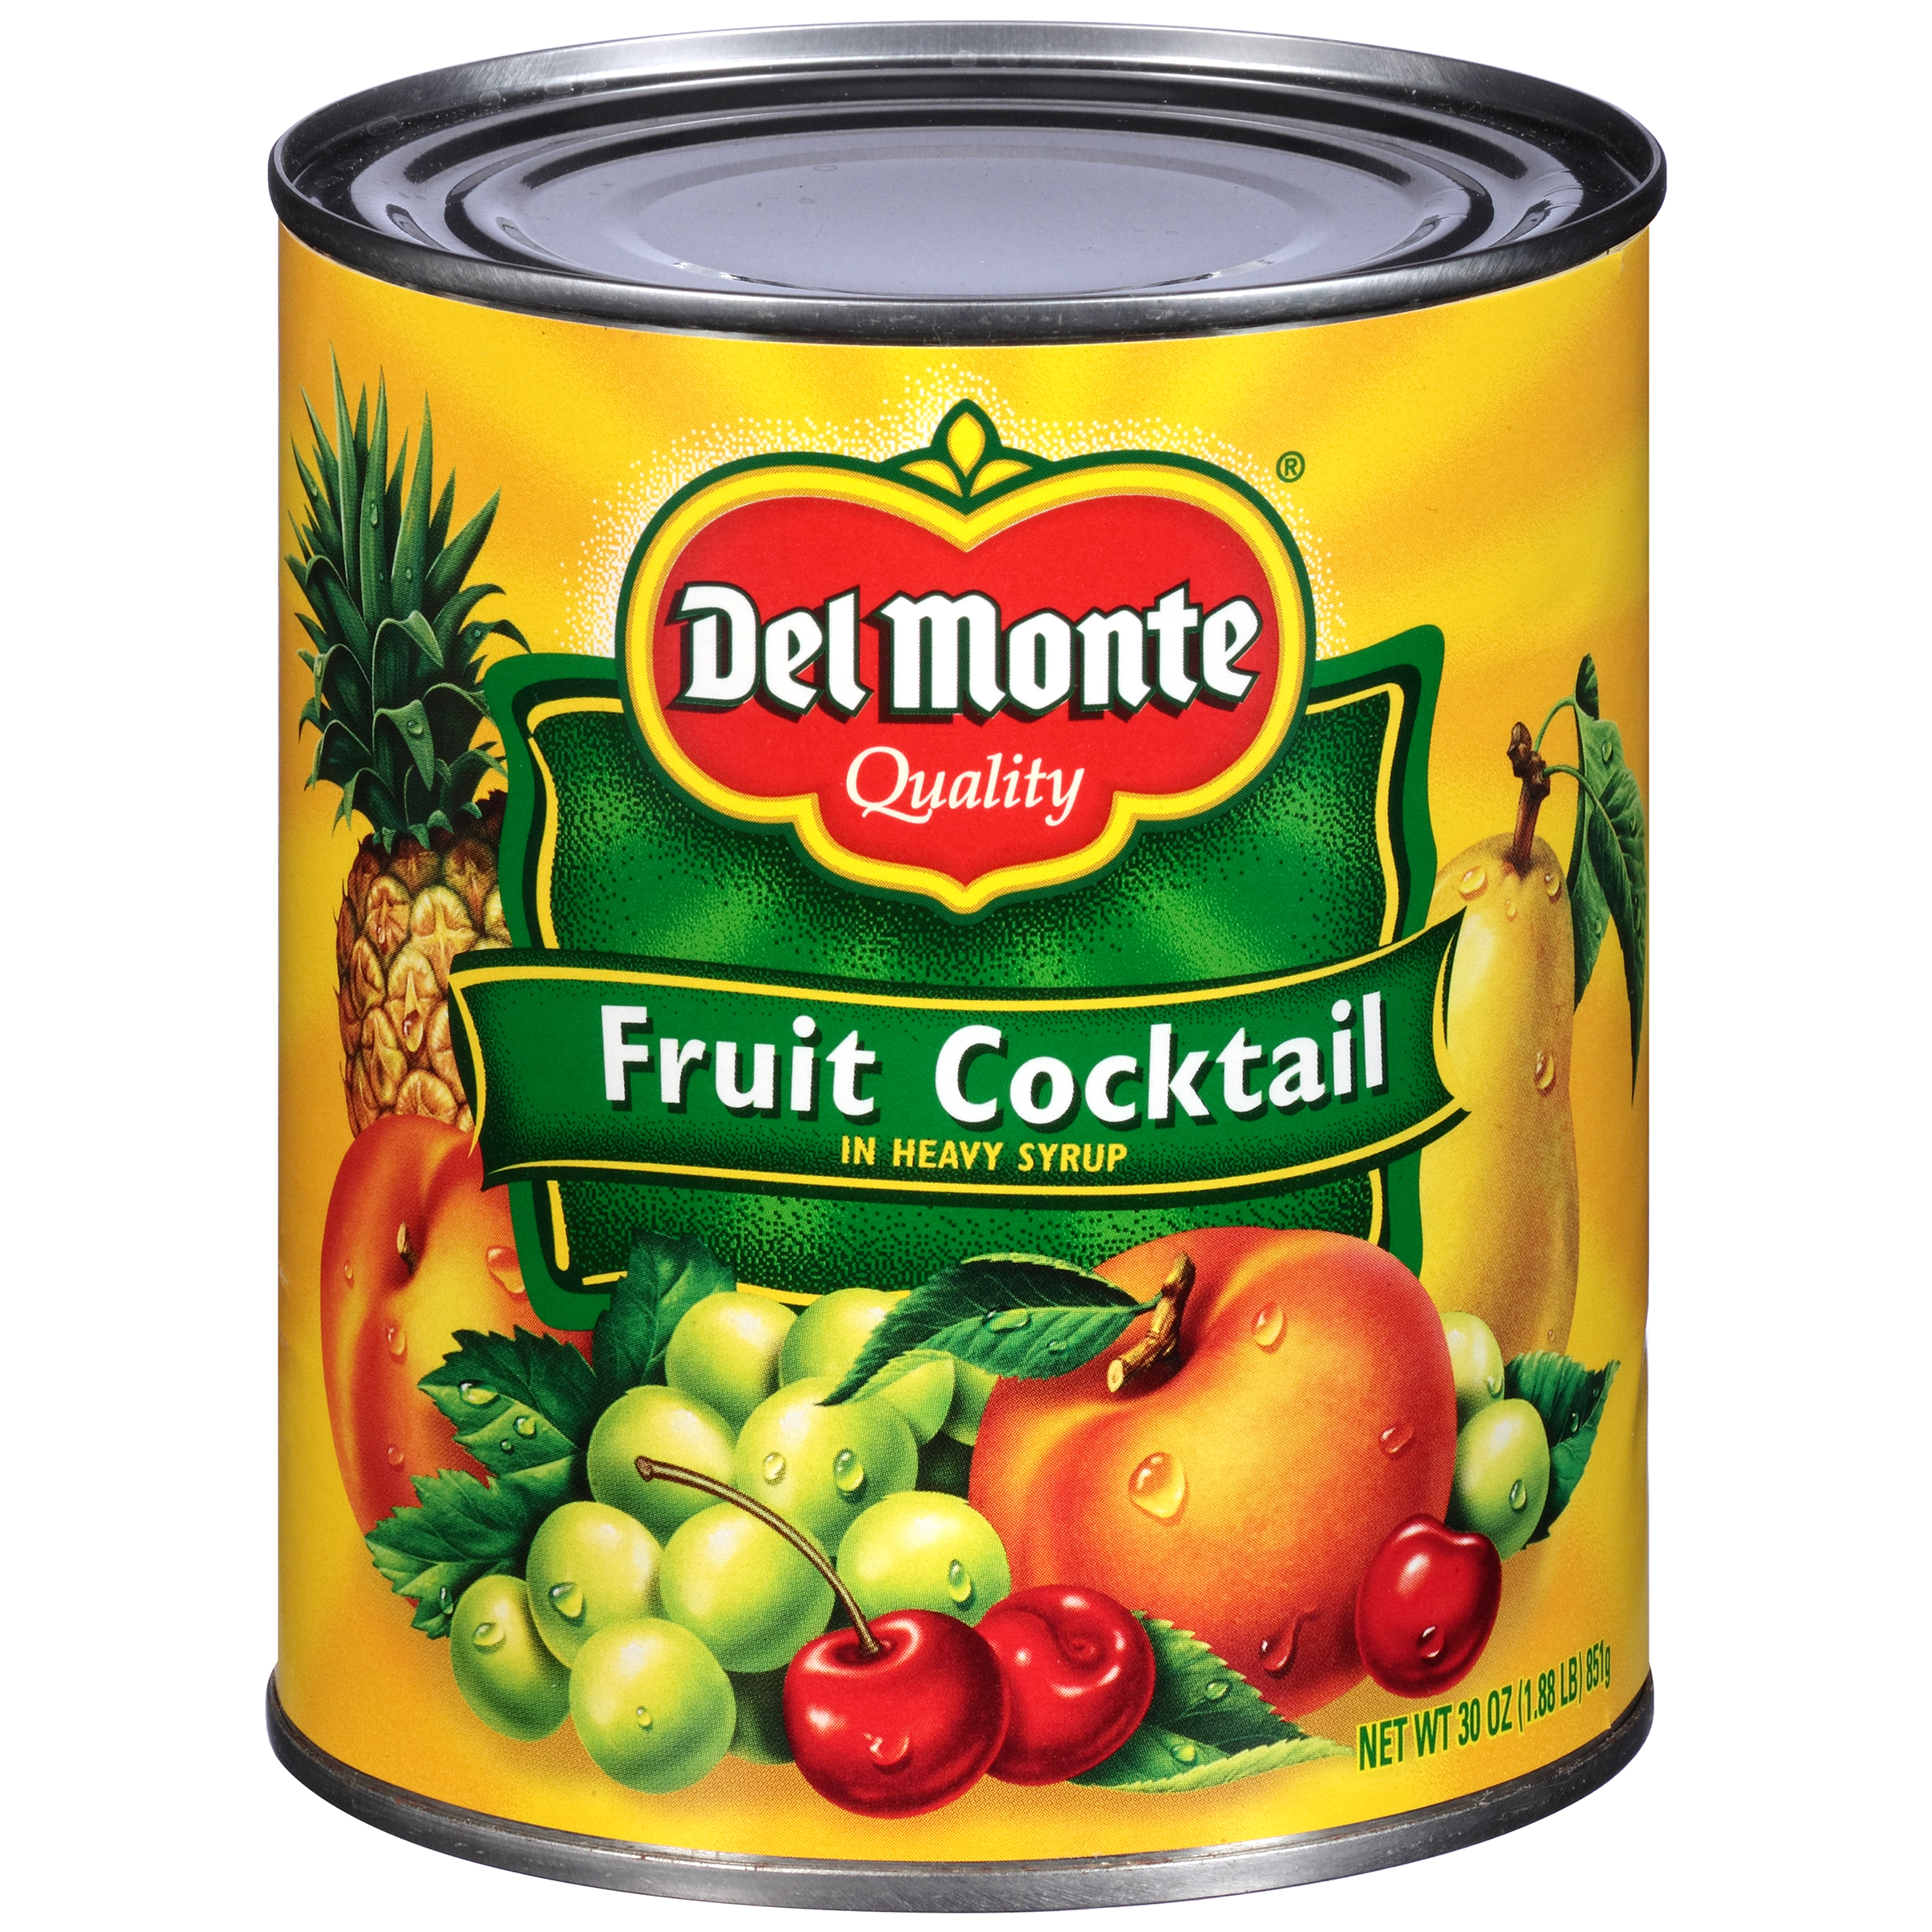 Del Monte Fruit Cocktail in Heavy Syrup, 30 oz